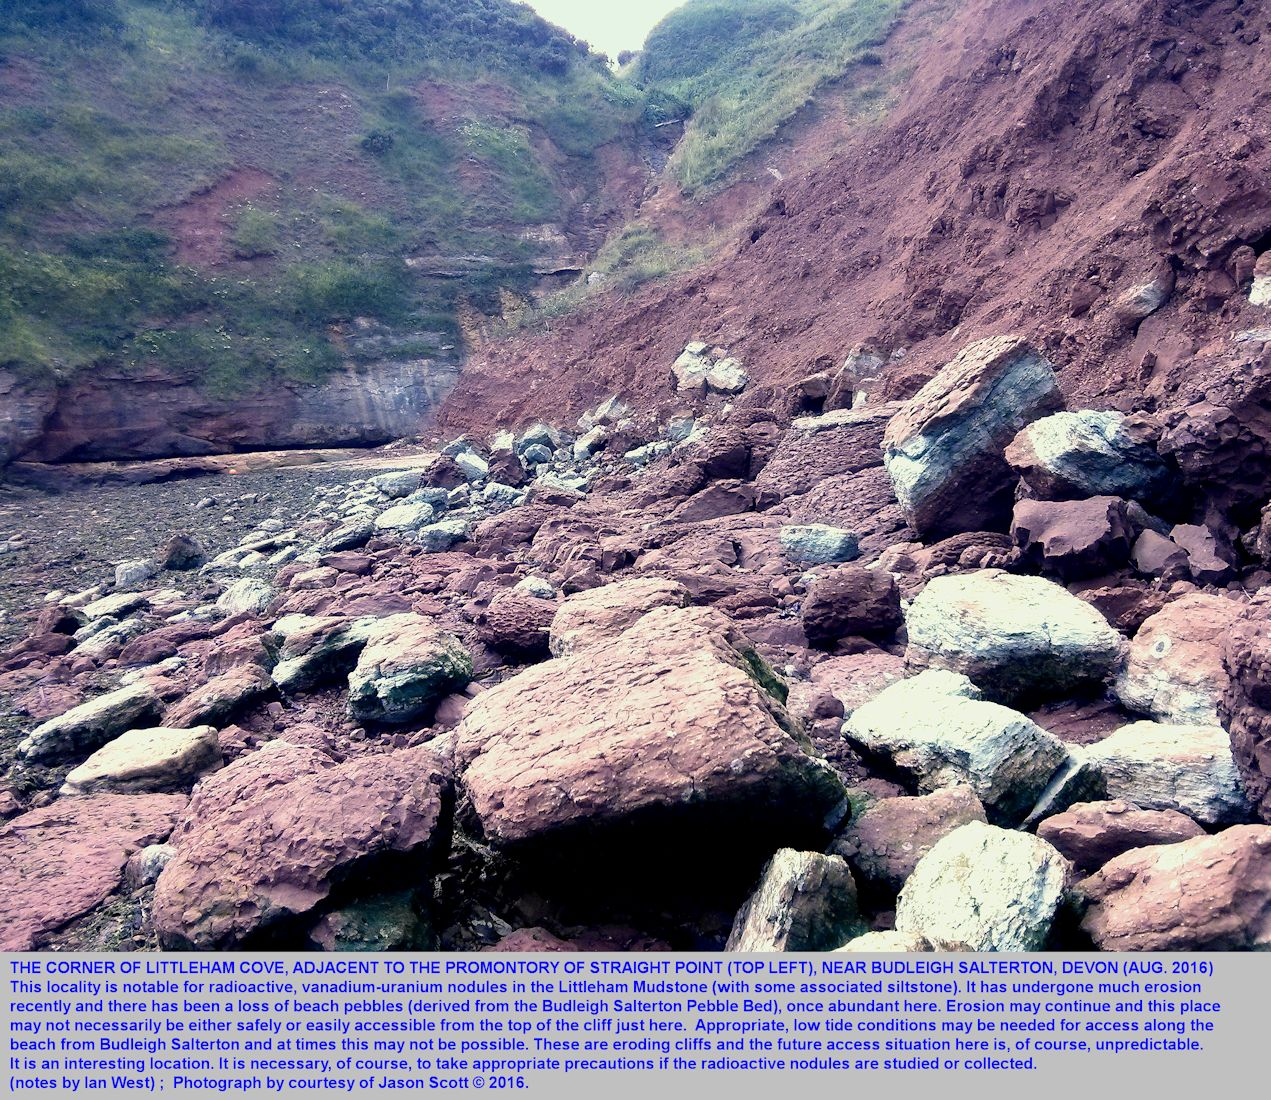 The corner of Littleham Cove, southwest of Budleigh Salterton, Devon, a locality where the Littleham Mudstones contain radioactive nodules, and where there has been significant recent erosion by the sea, August 2016, photograph Jason Scott